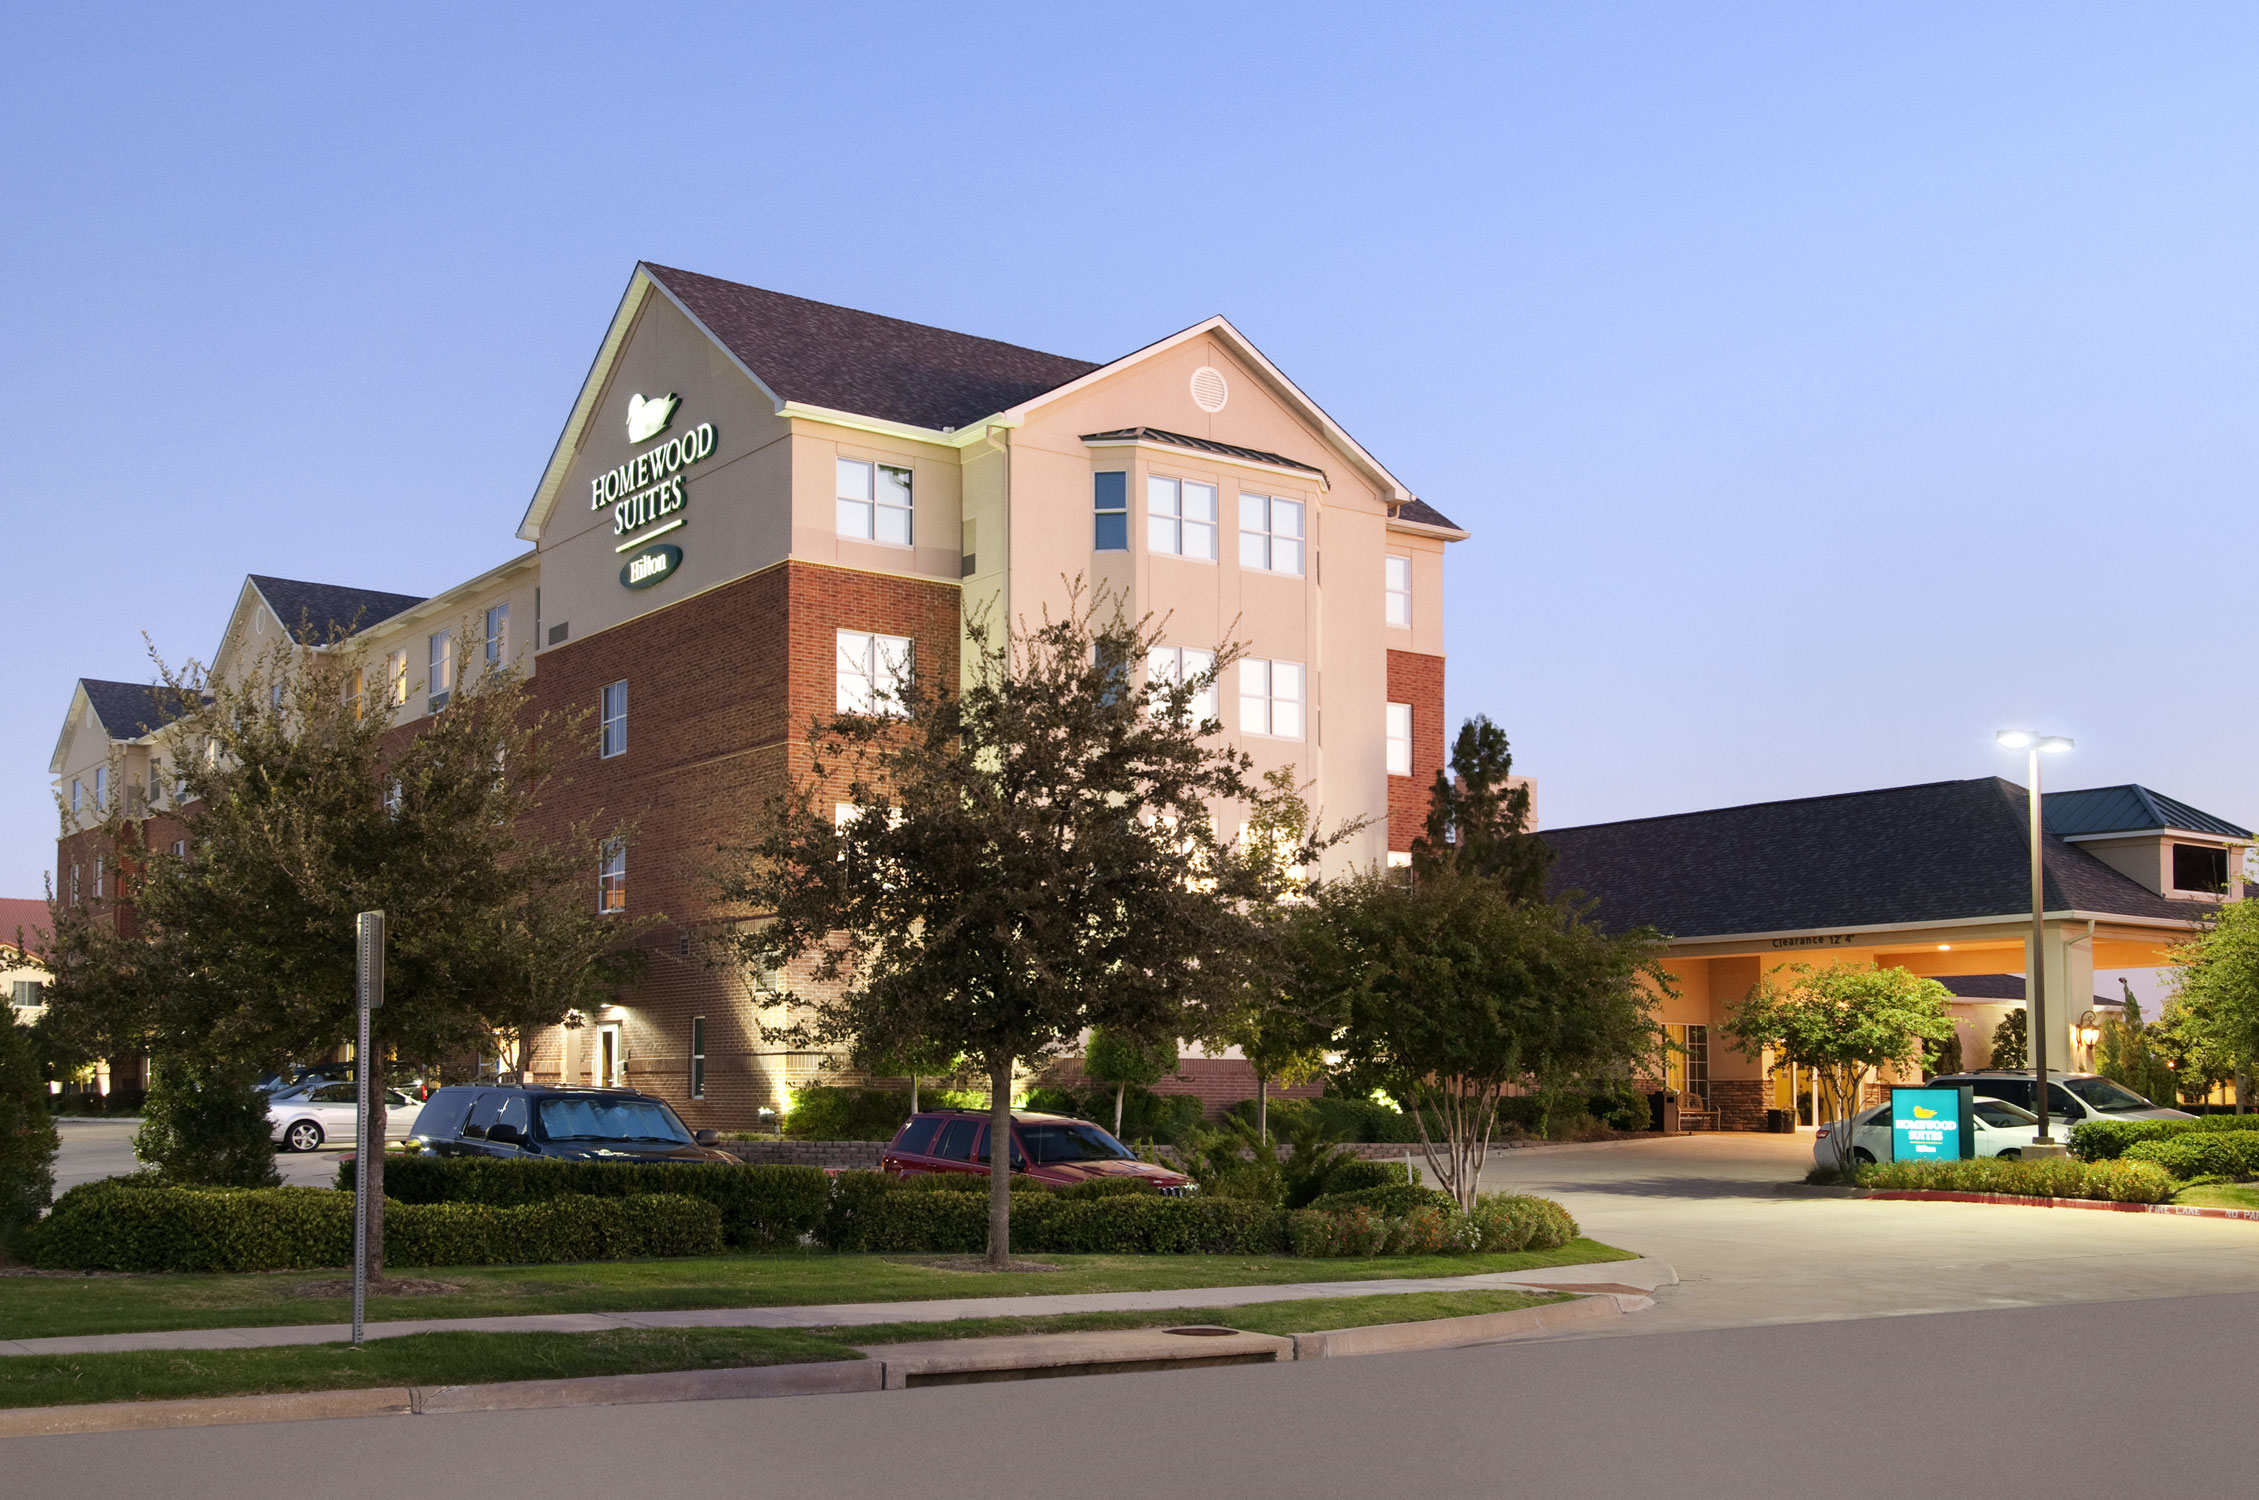 Homewood suites by hilton irving dfw airport coupons near for Irving hotel chicago